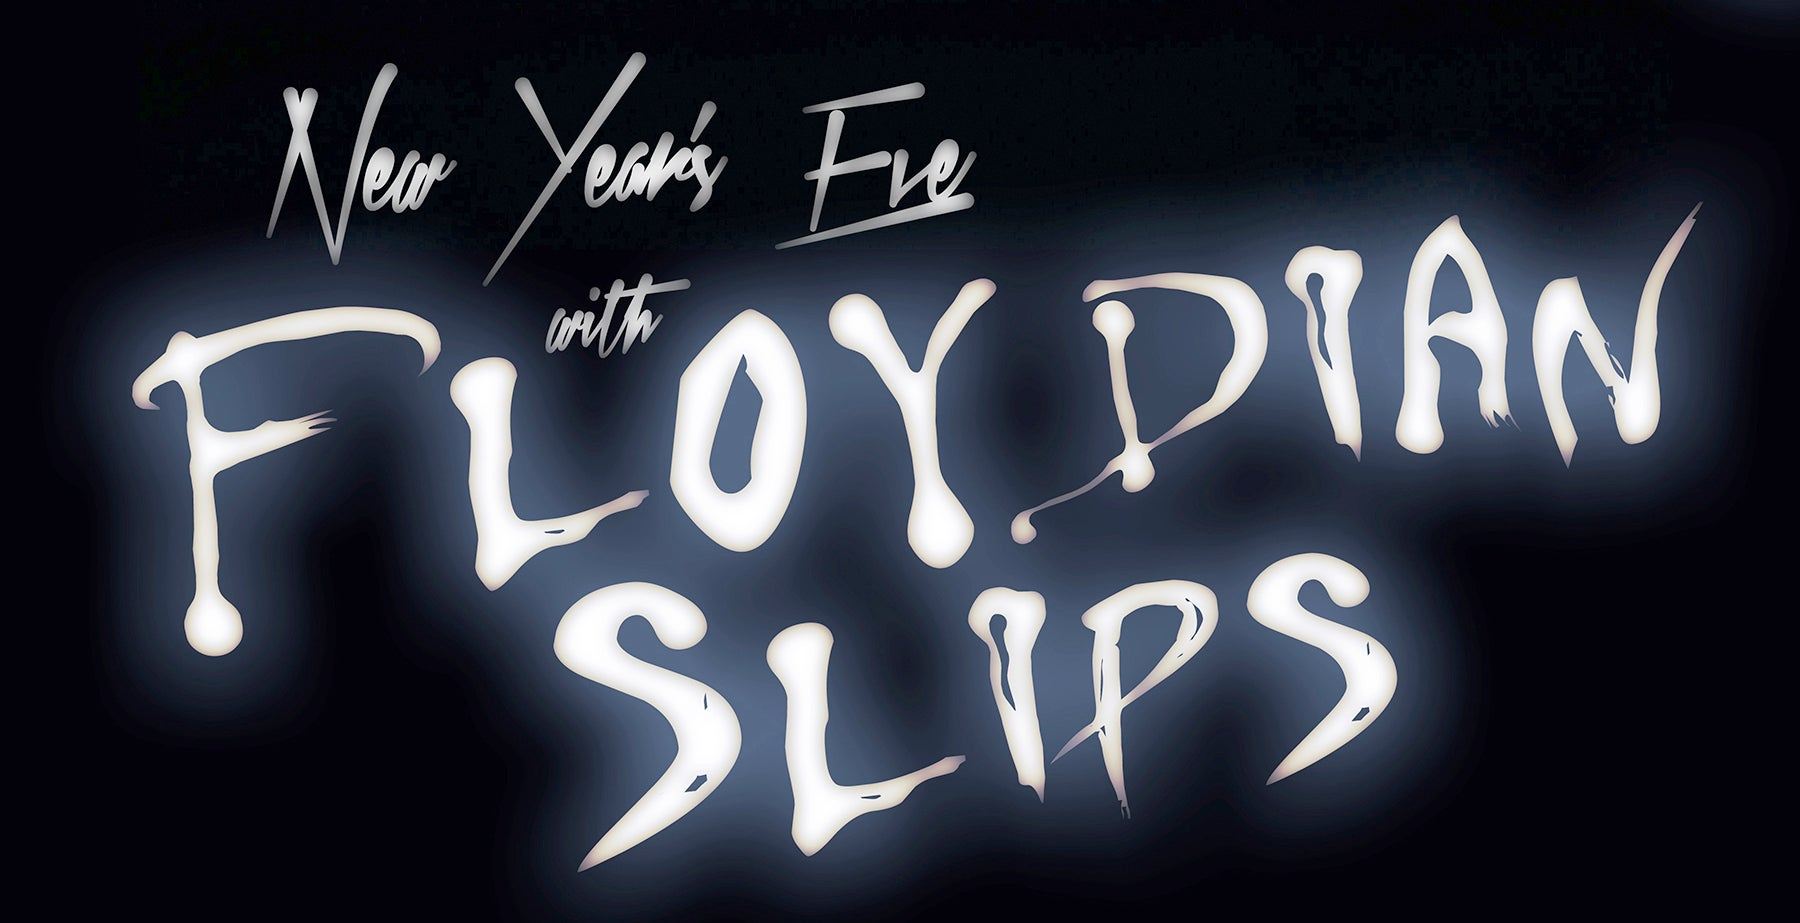 An Evening With: The Floydian Slips